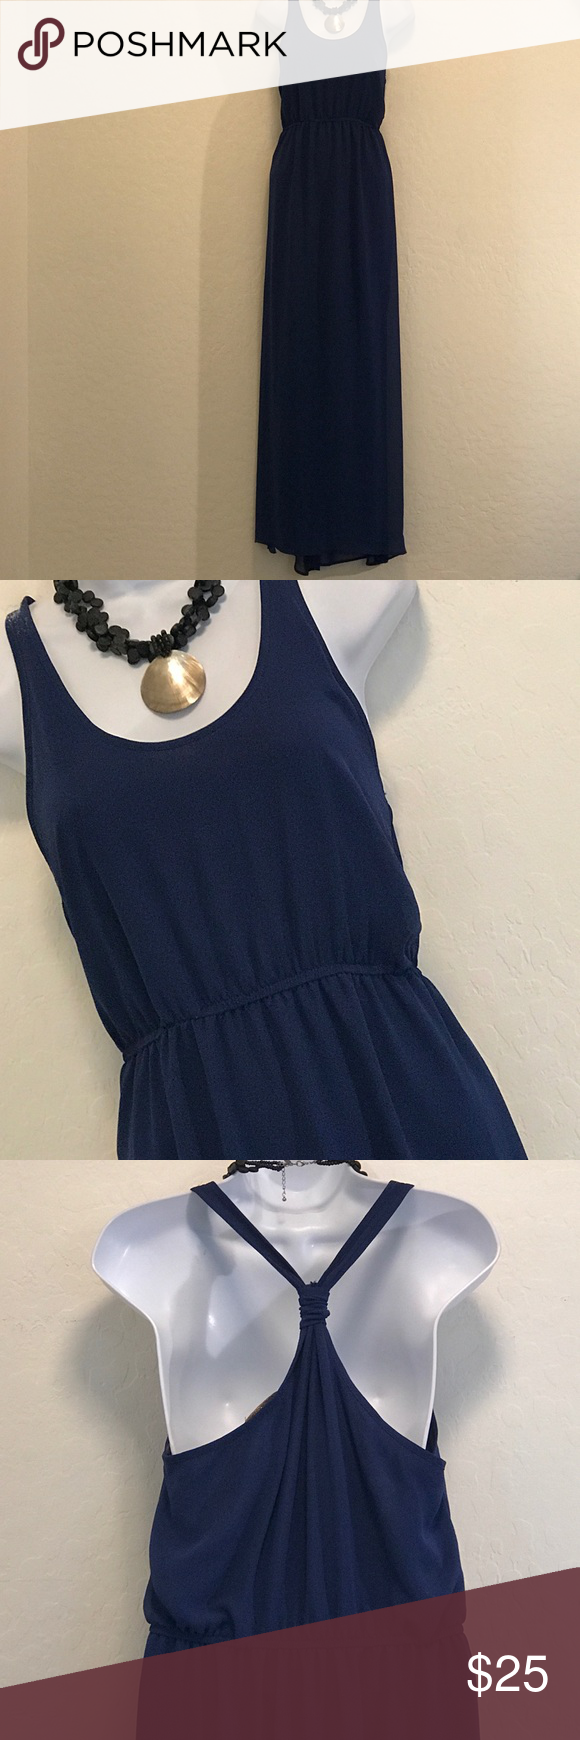 ⬇️Price Drop⬇️Dee Elle Blue Racerback Maxi Dress Excellent Condition, Elastic Waist, Sheer Dress, Lined Short Skirt underneath, Great Color, Long, Side Slit. Dresses Maxi